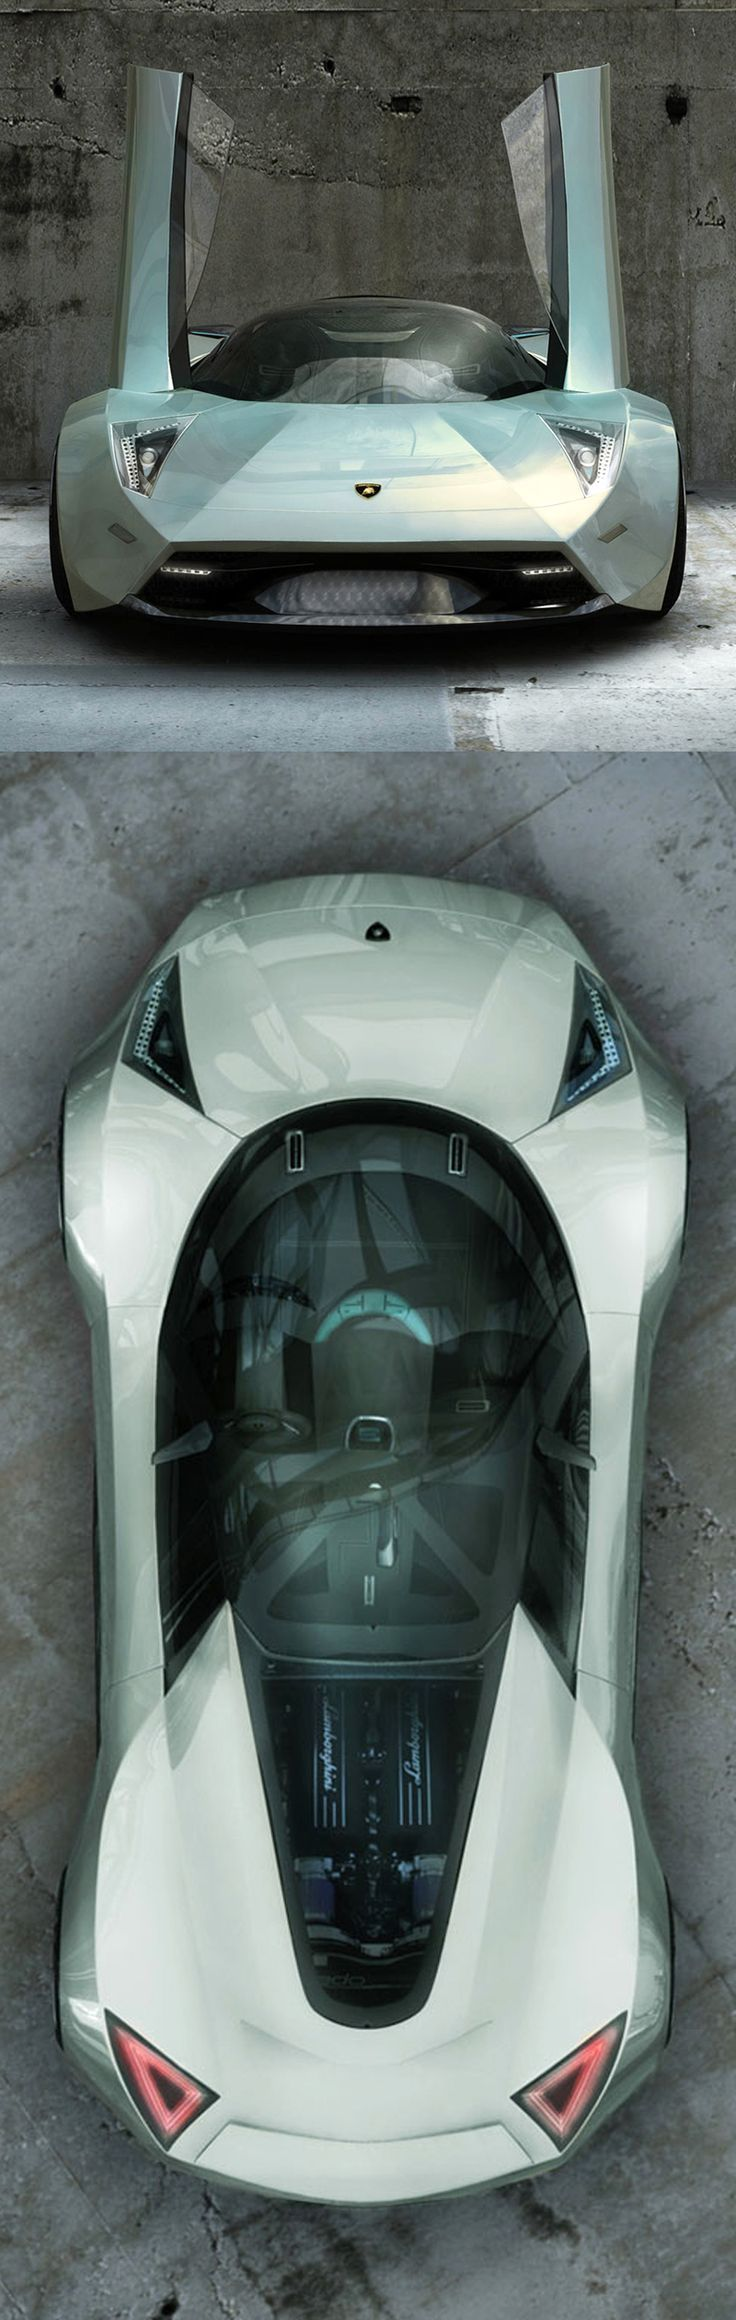 ♂ Lamborghini Insecta Concept car silver from www.carbodydesign...